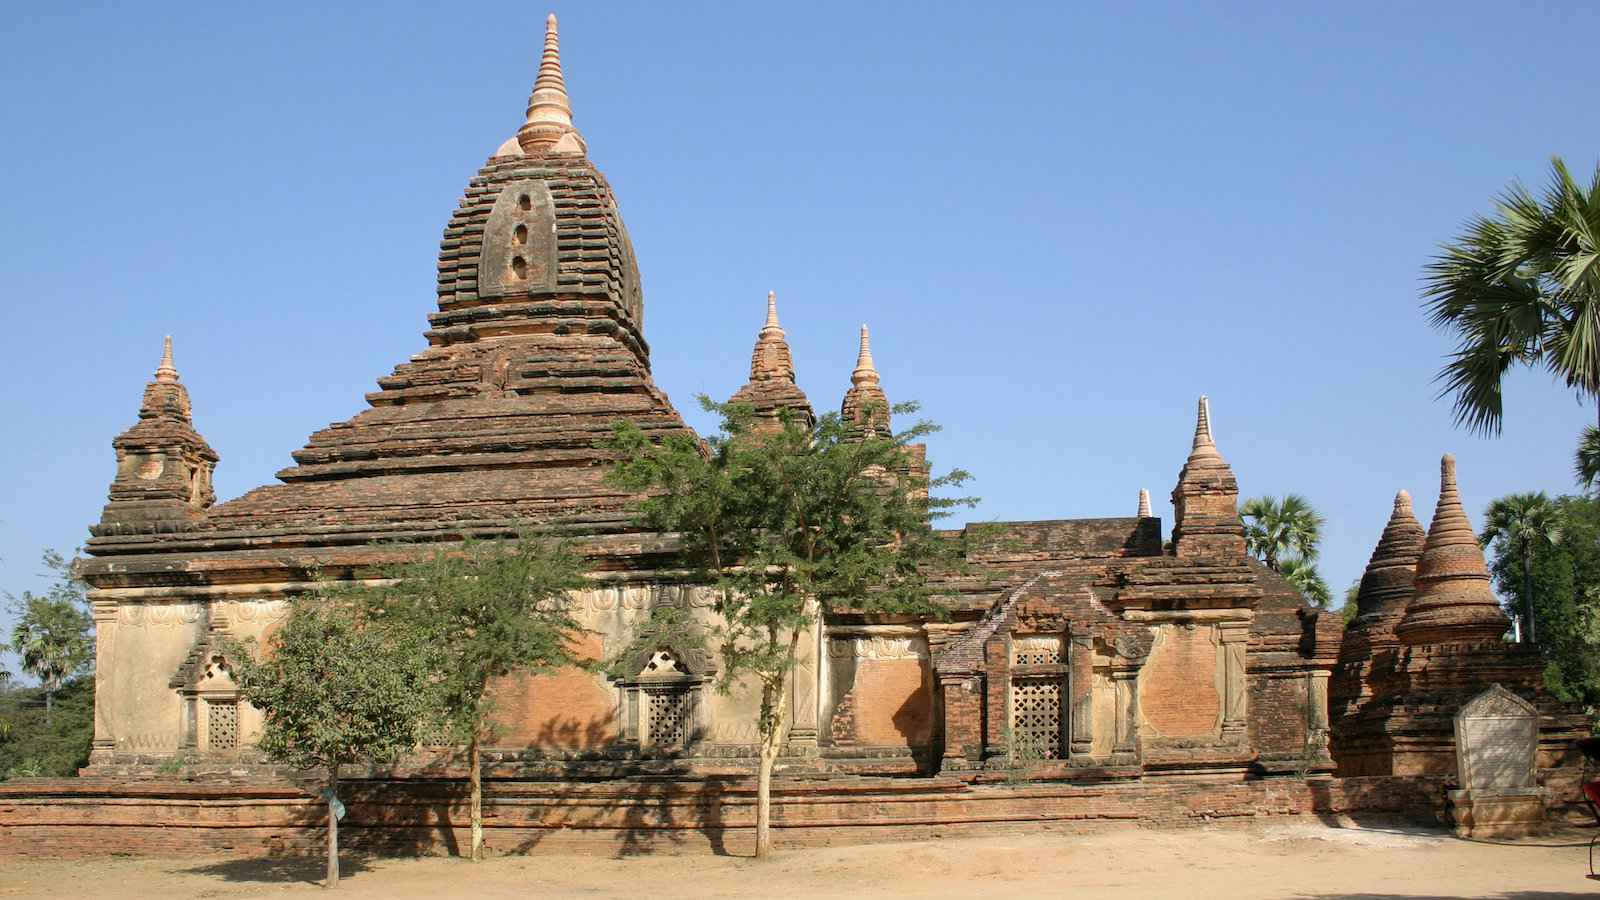 Gubyaukgyi is one of the best temples in Bagan to see sunset